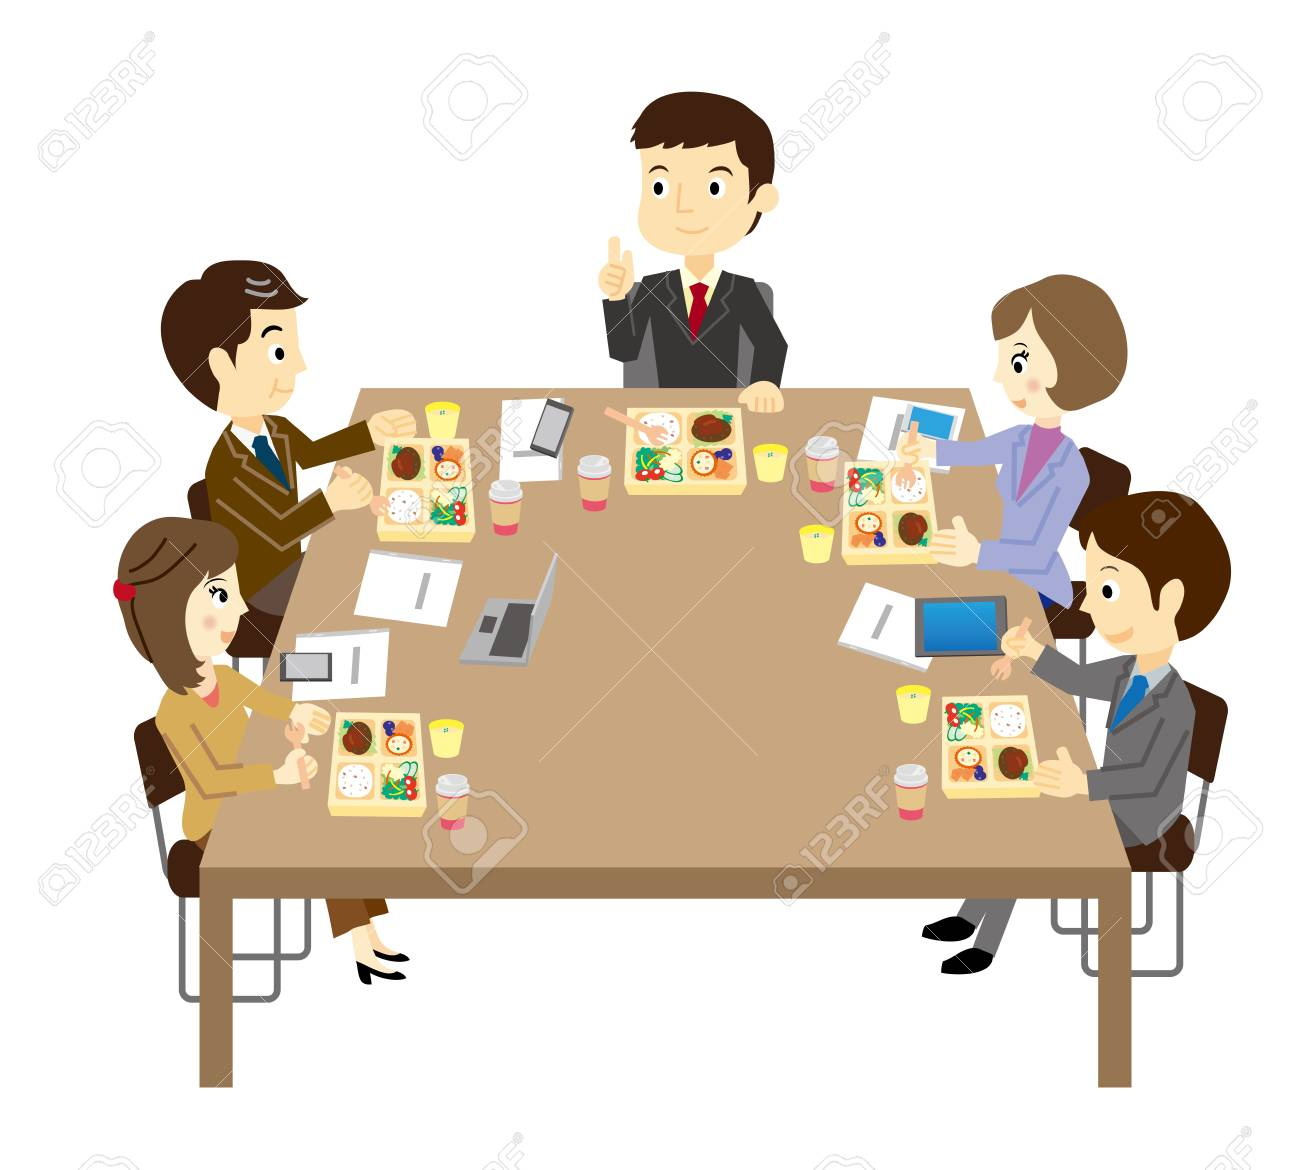 The people who have a lunch meeting.